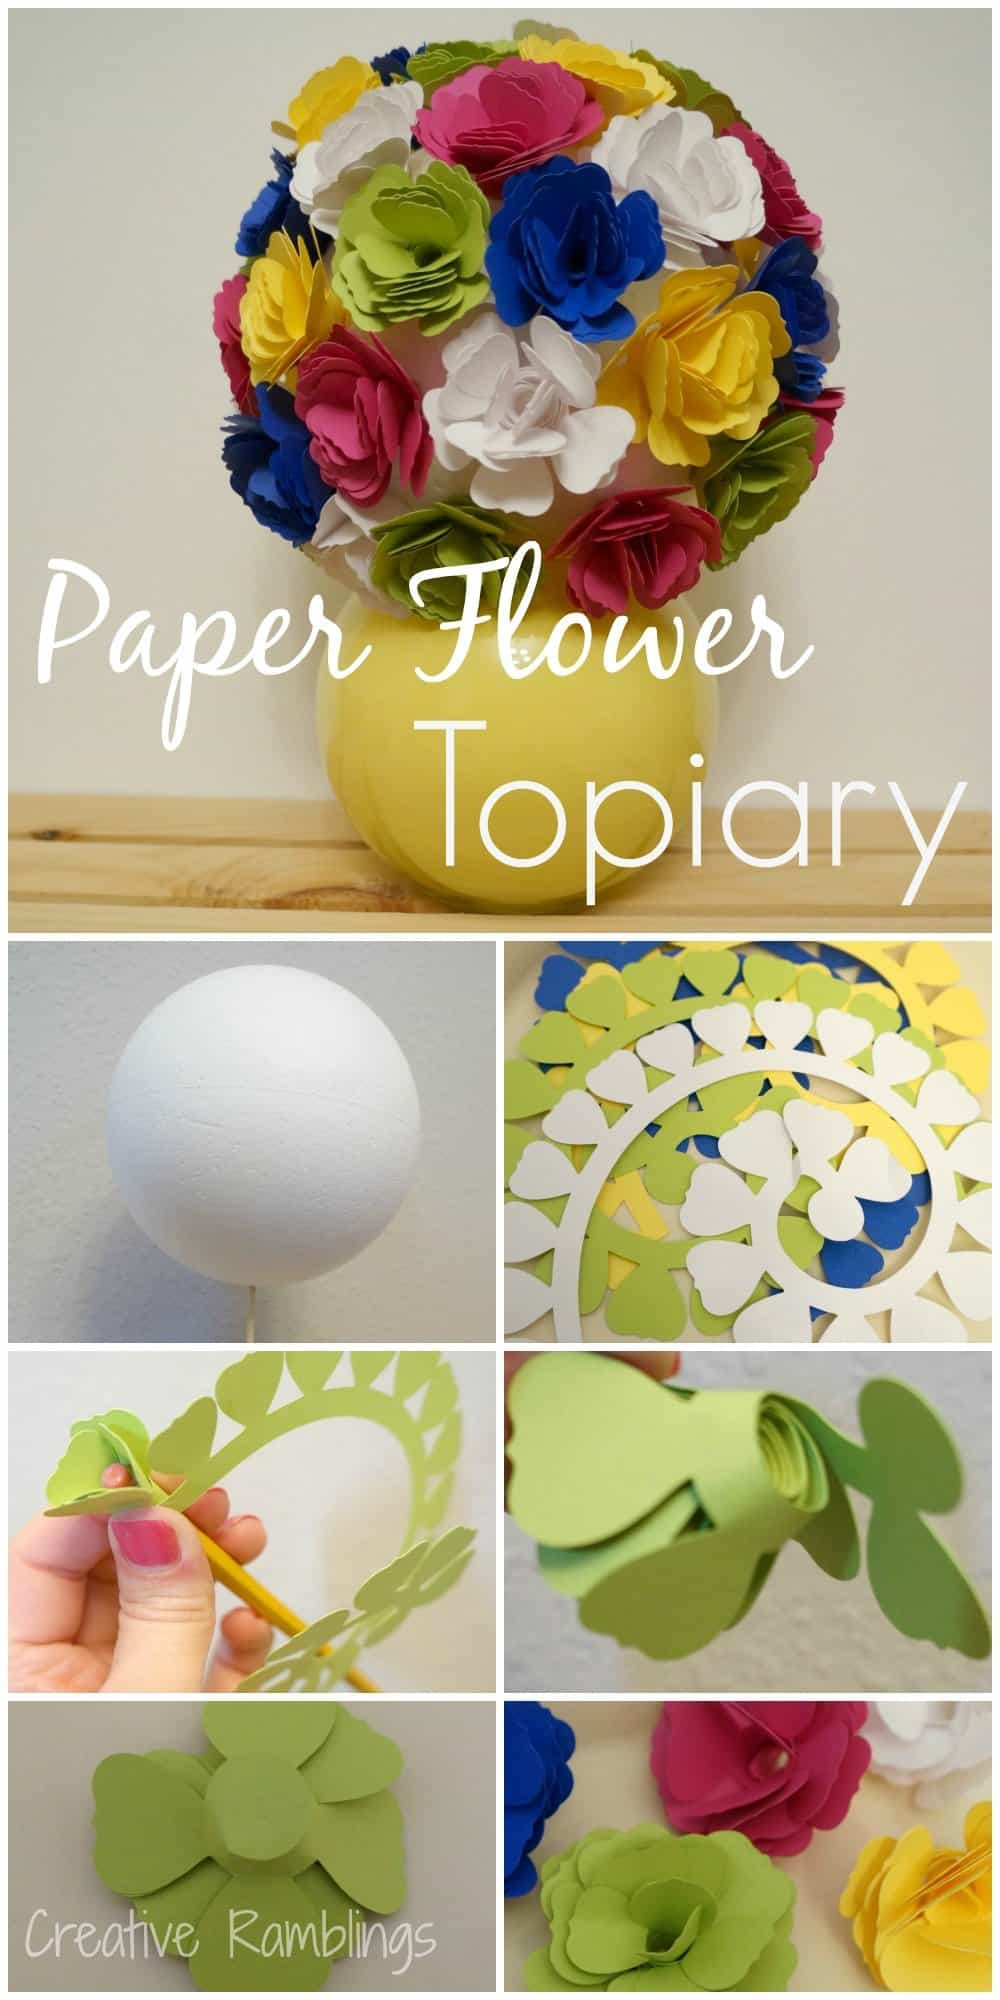 Paper flower topiary from creative ramblings weekend craft paper flower topiary step by step mightylinksfo